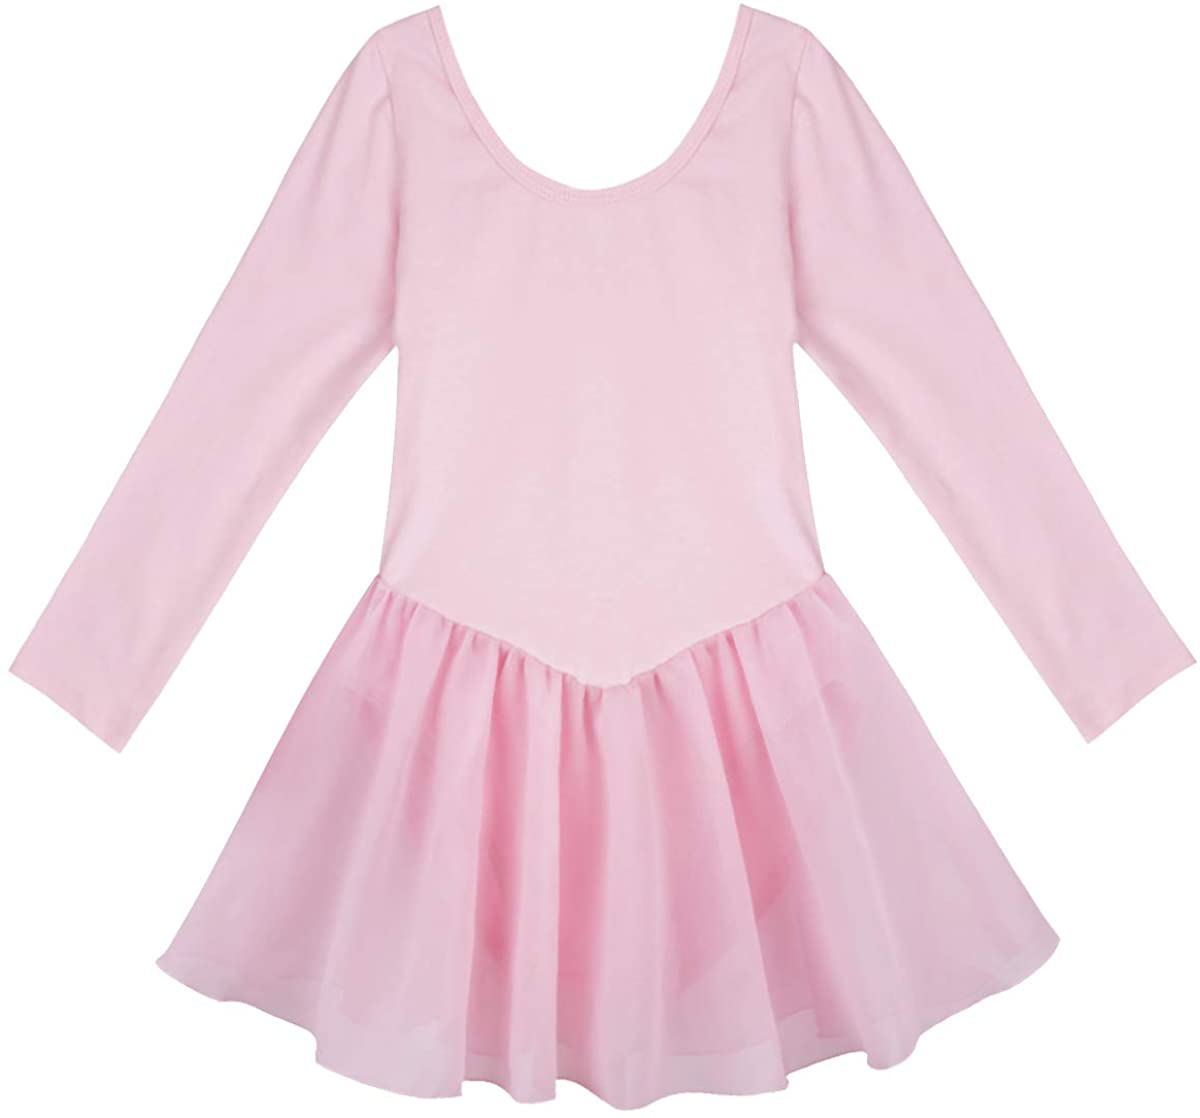 CHICTRY Girls Kids Basics Long Sleeve Ballet Dance Dresses Gymnastics Tutu Leotard Skirt